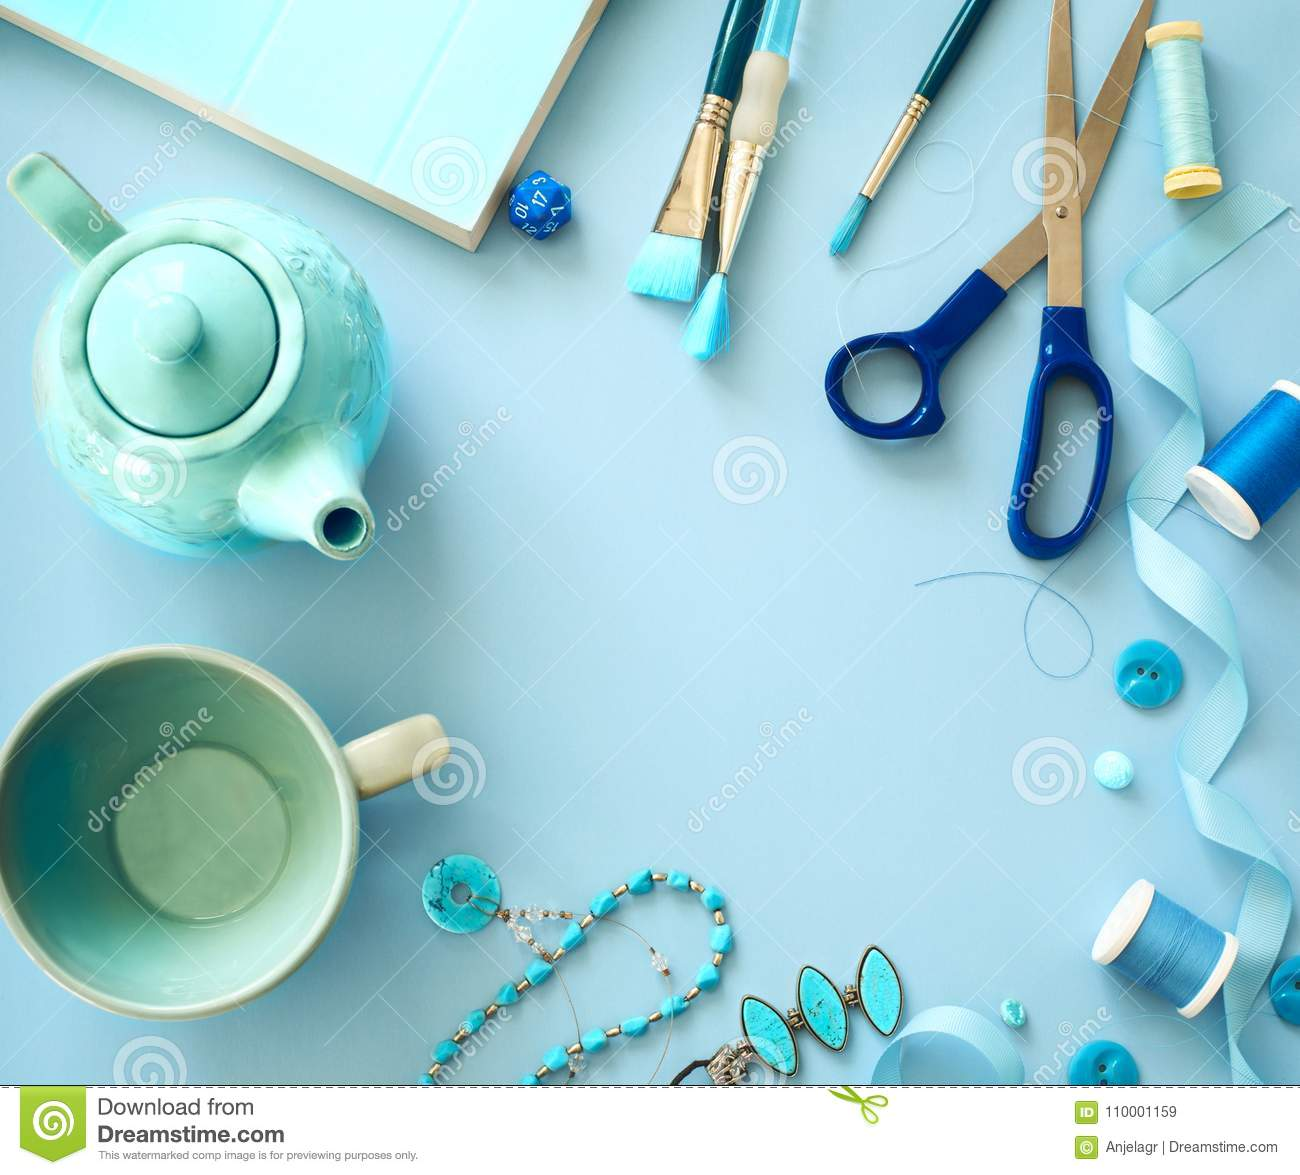 Flat Lay Blue Color Objects And Accessories Frame On Light Blue